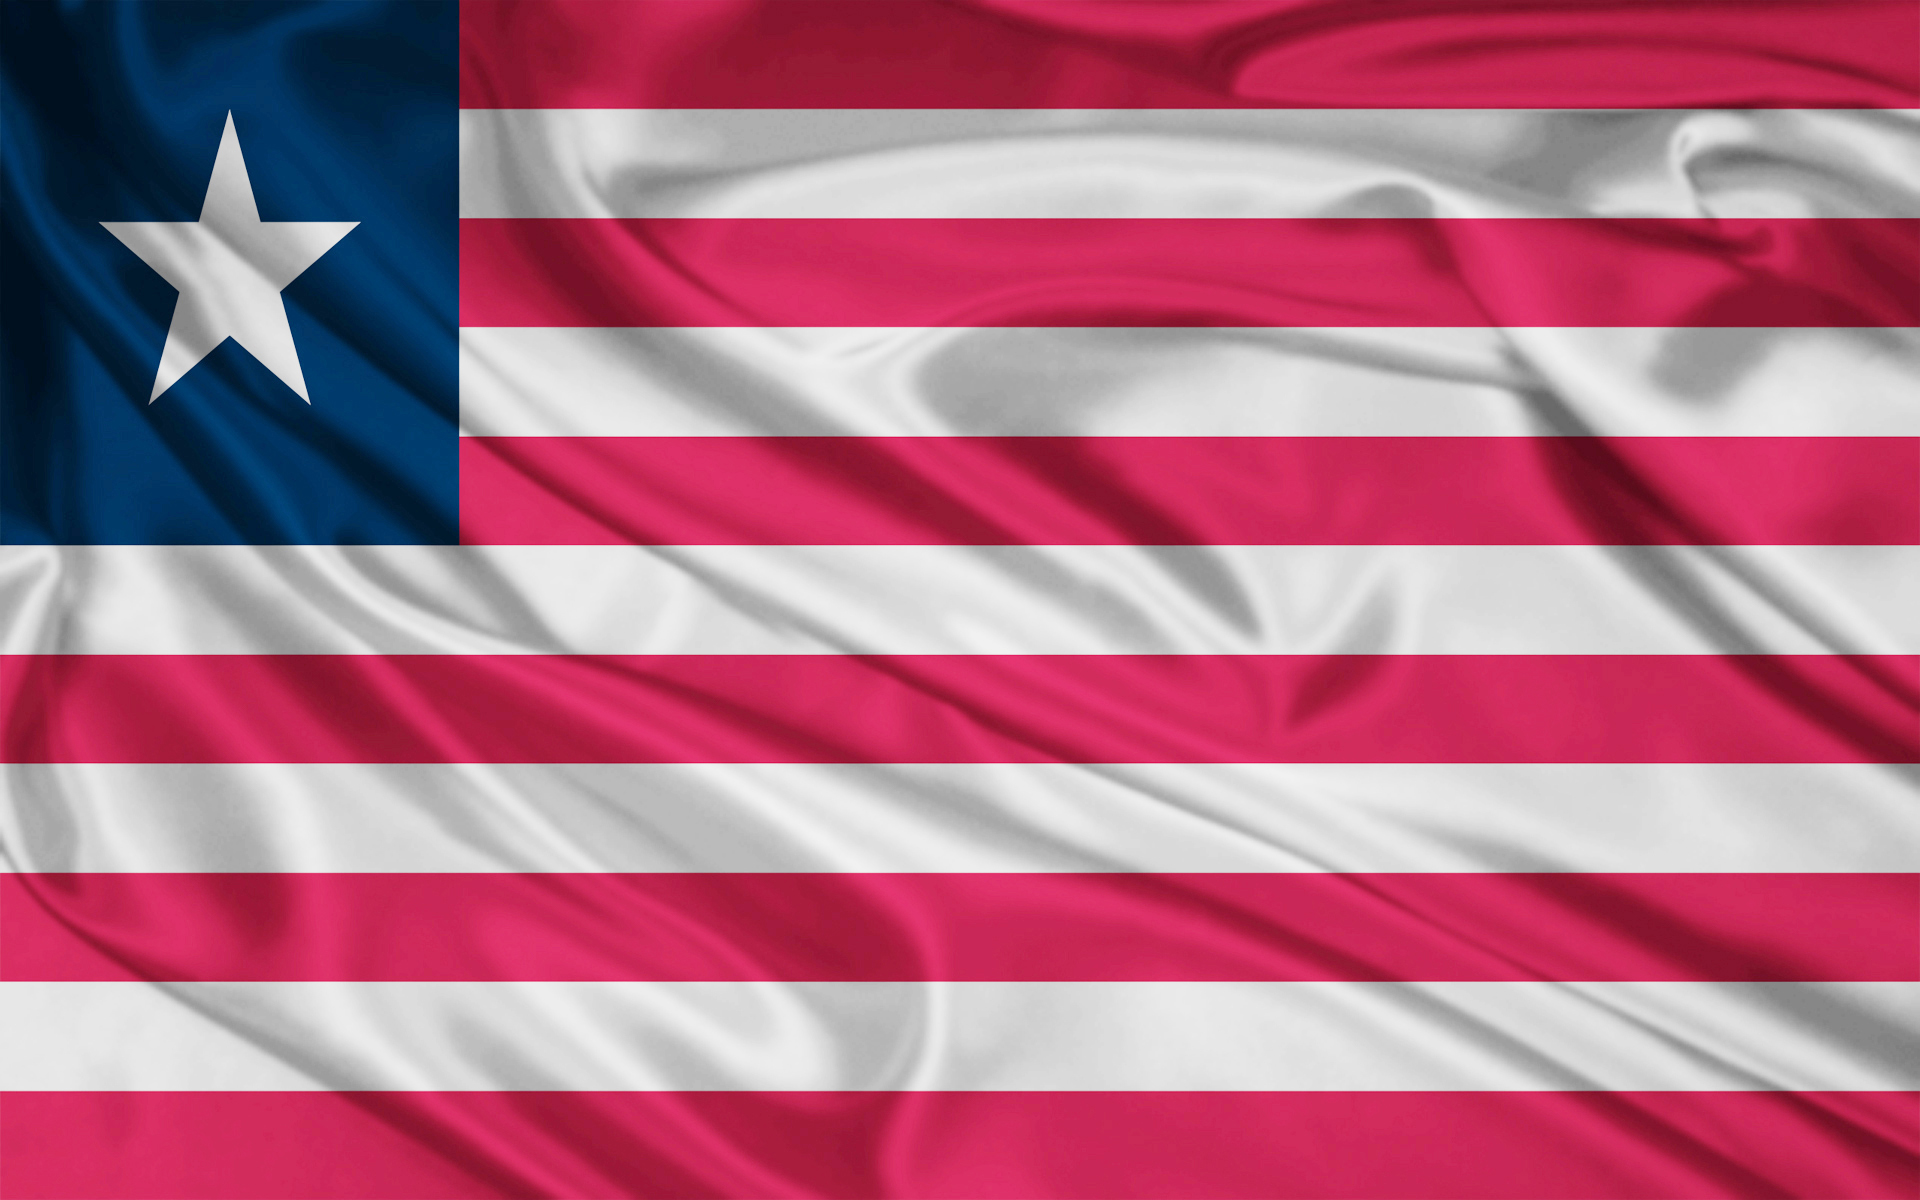 Liberia flag and wallpaper